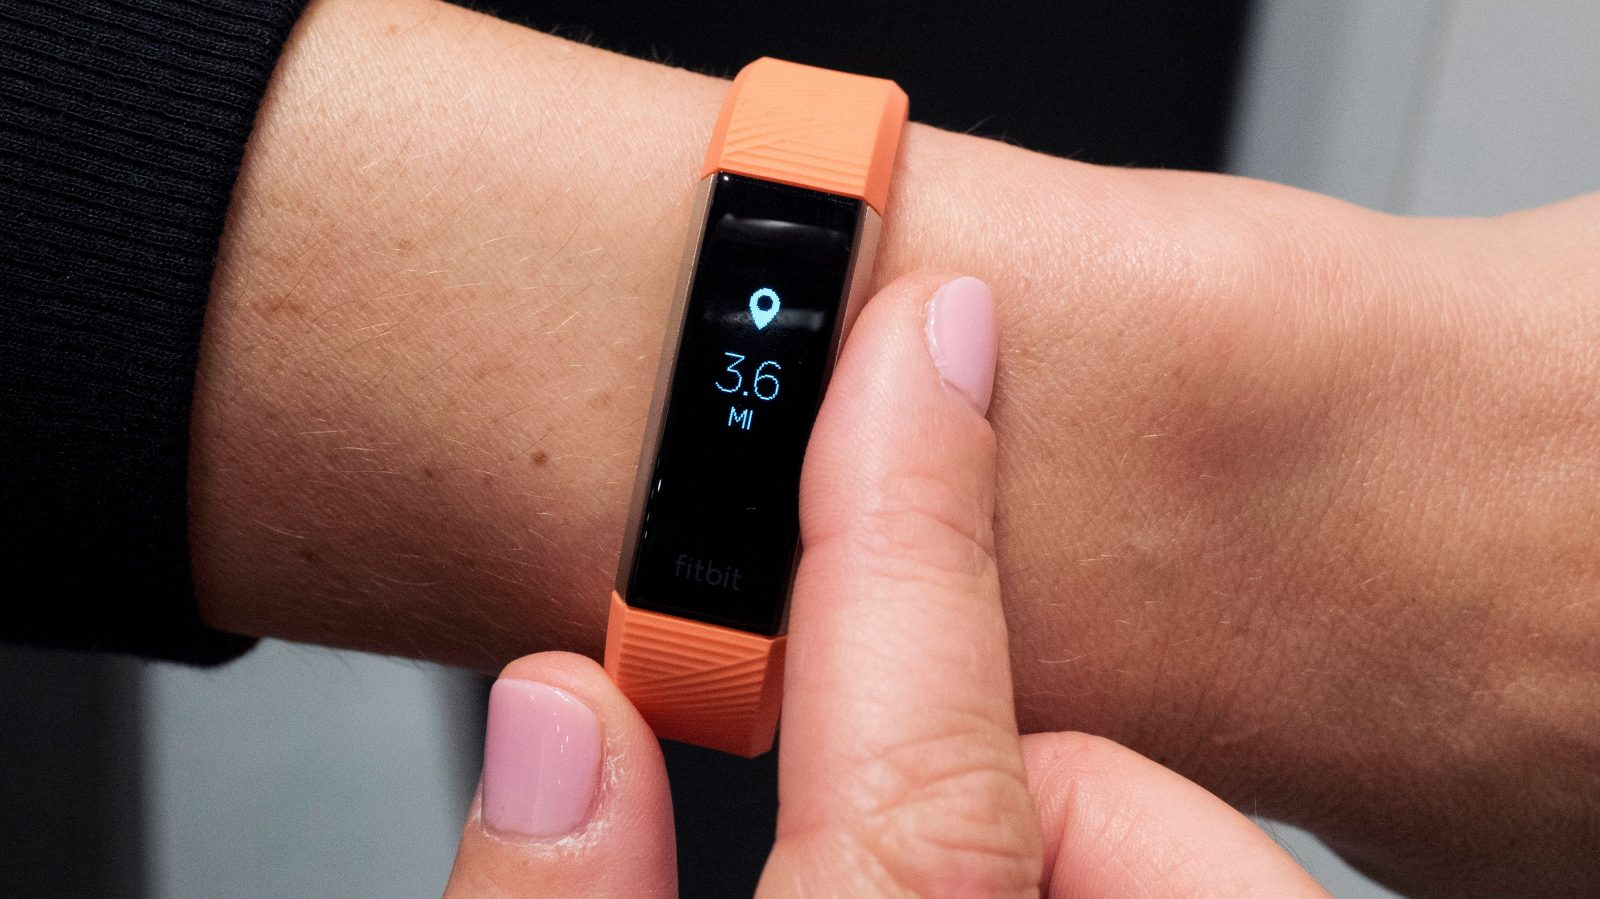 qz.com - Dave Gershgorn - A life insurance giant is asking customers to wear health trackers